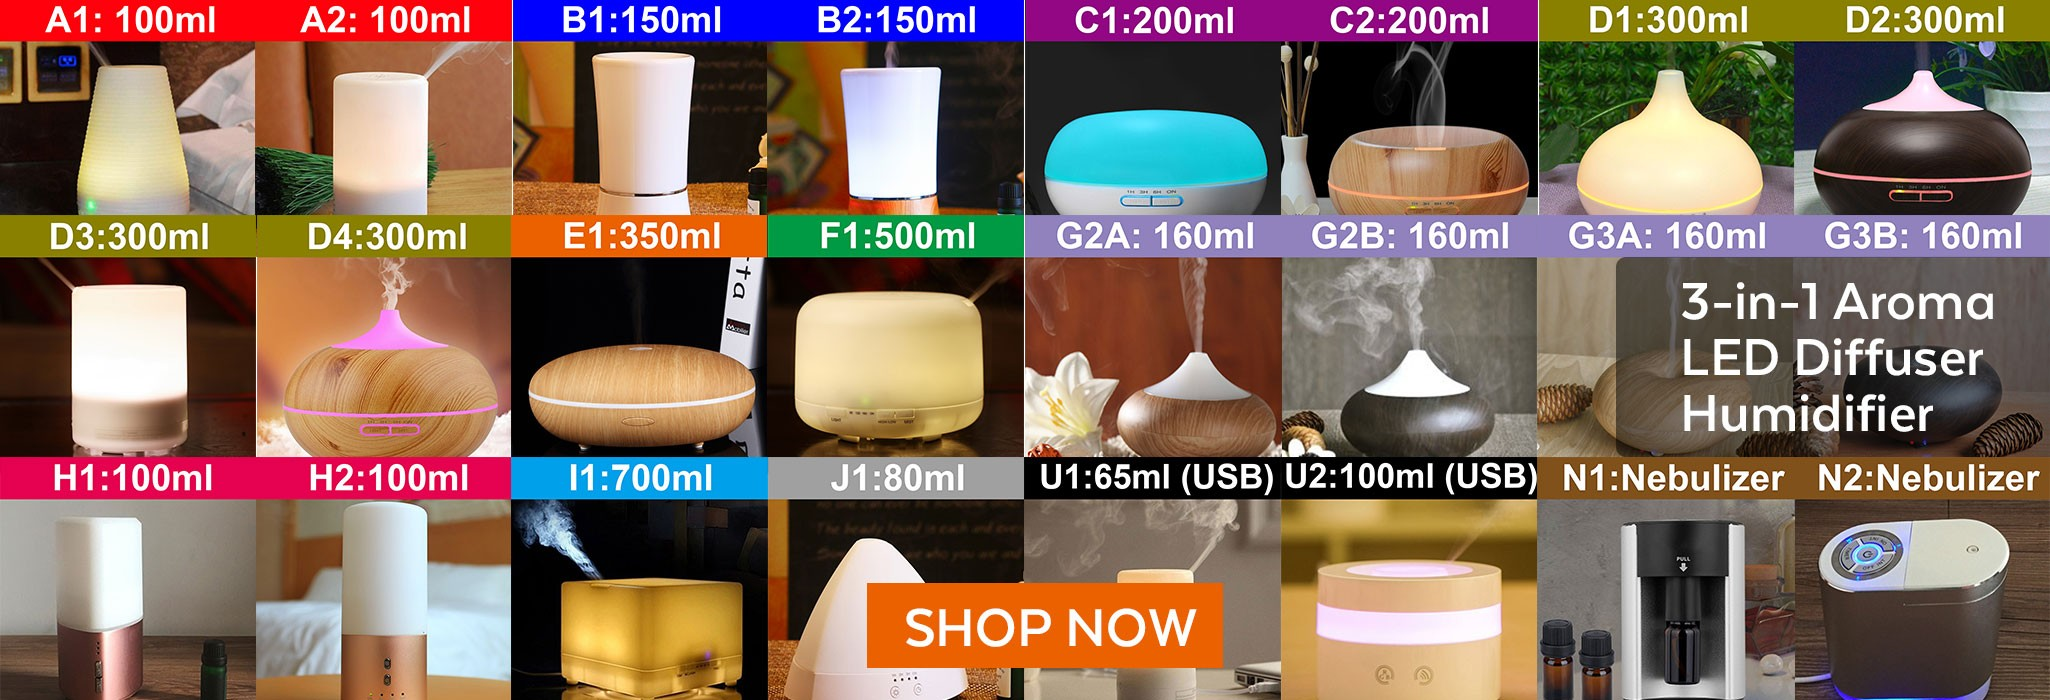 Ultrasonic Aroma Diffuser/ Air Humidifier/ Purifier/ 7-Color LED Light, 10 Hours Mist, Auto Off, Super Quiet